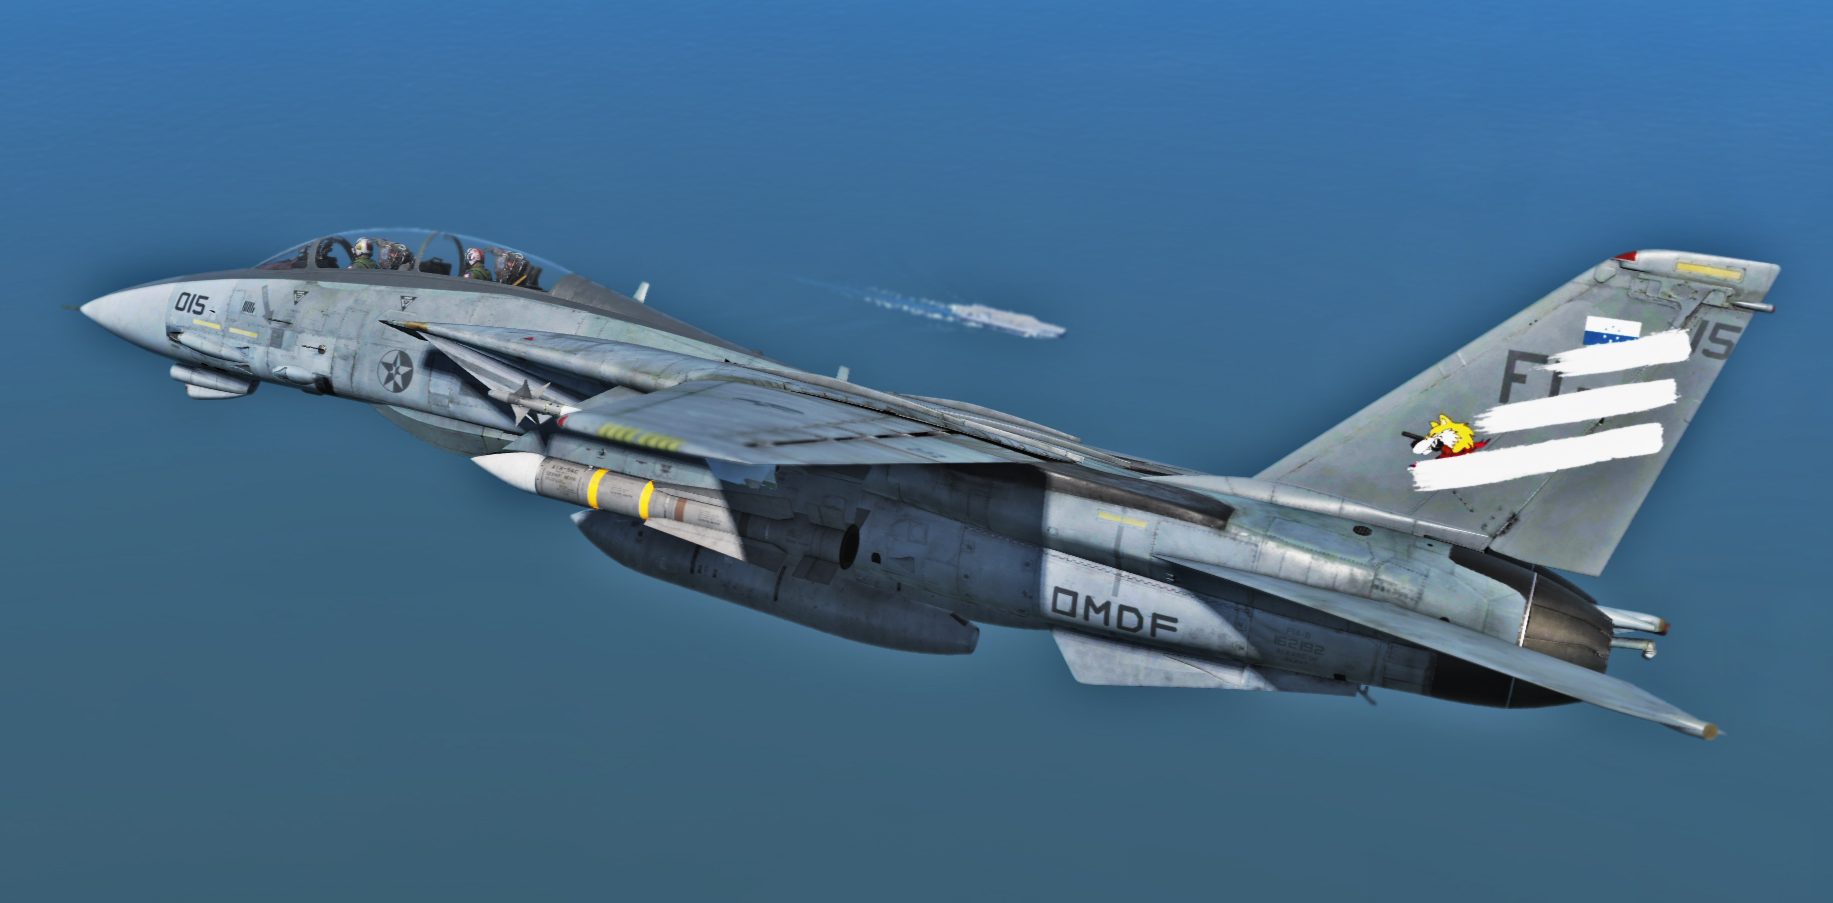 Ace Combat - F-14B Spare 15 skin from Ace Combat 7:Skies Unknown